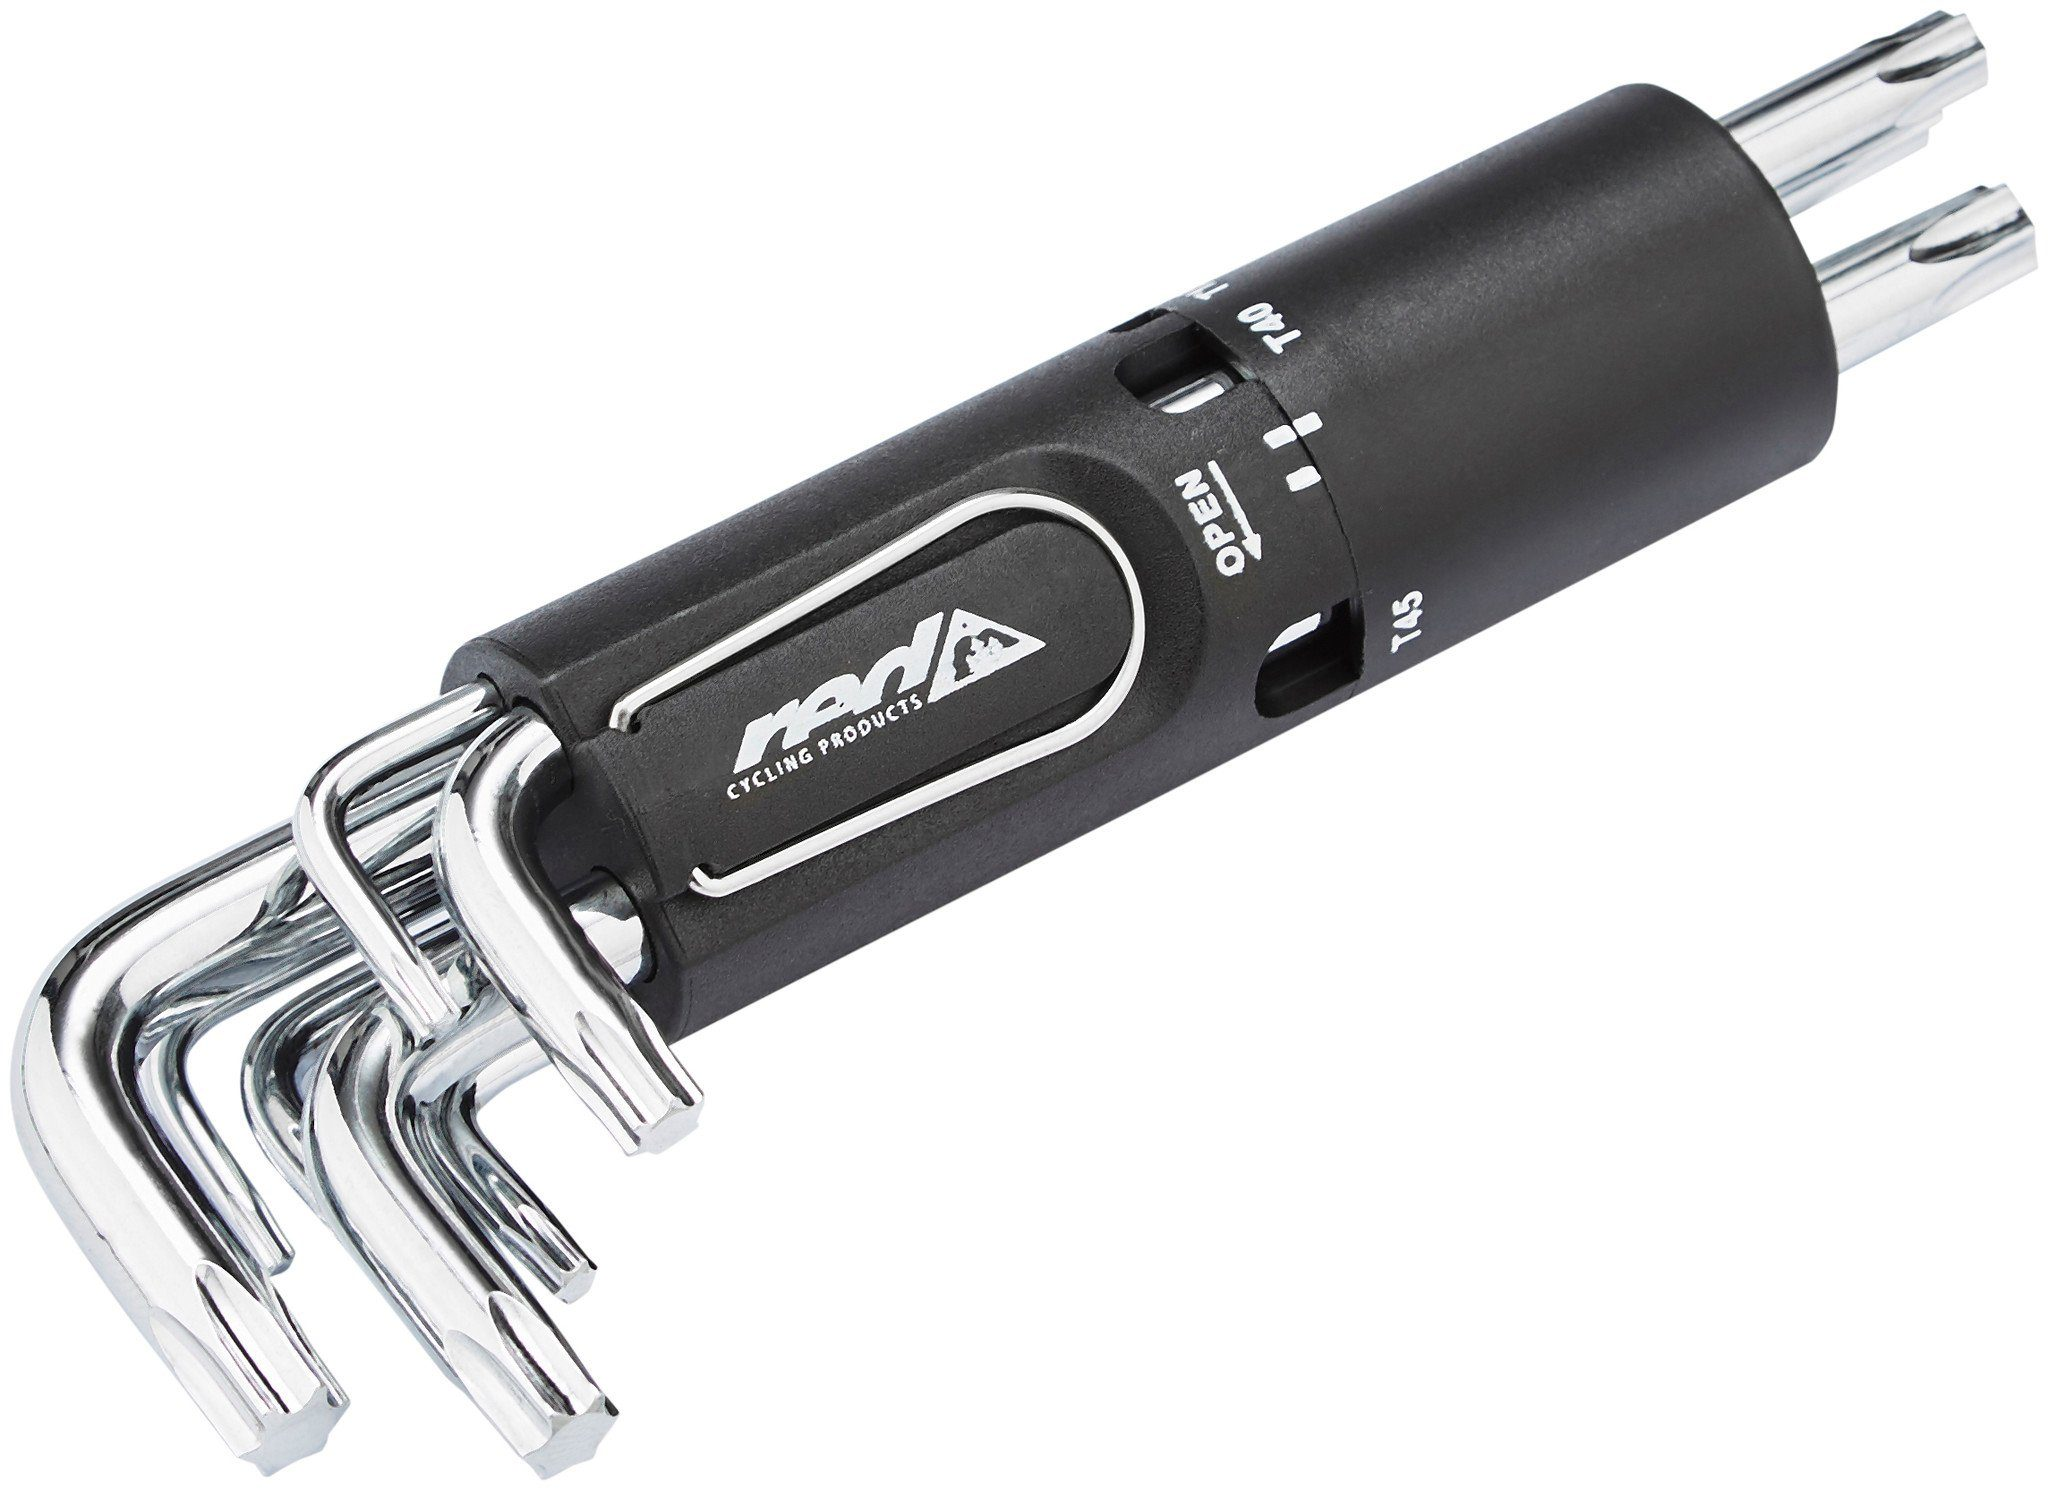 Red Cycling Products Werkzeug & Montage »Torx wrench Set«